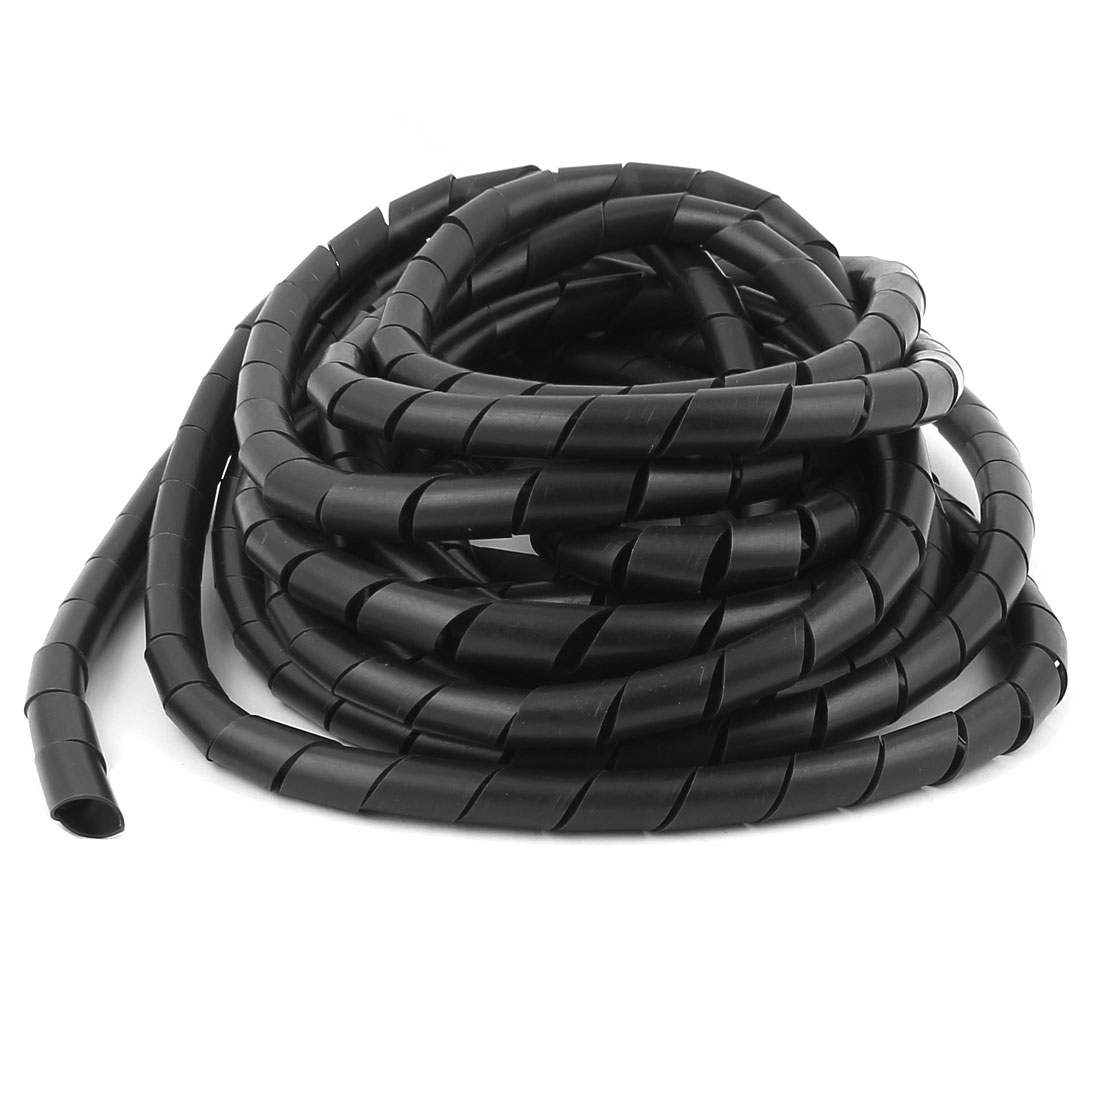 14mm Dia 4.5M 14.8Ft Long Spiral Cable Wire Wrap Tube Cord Pipe